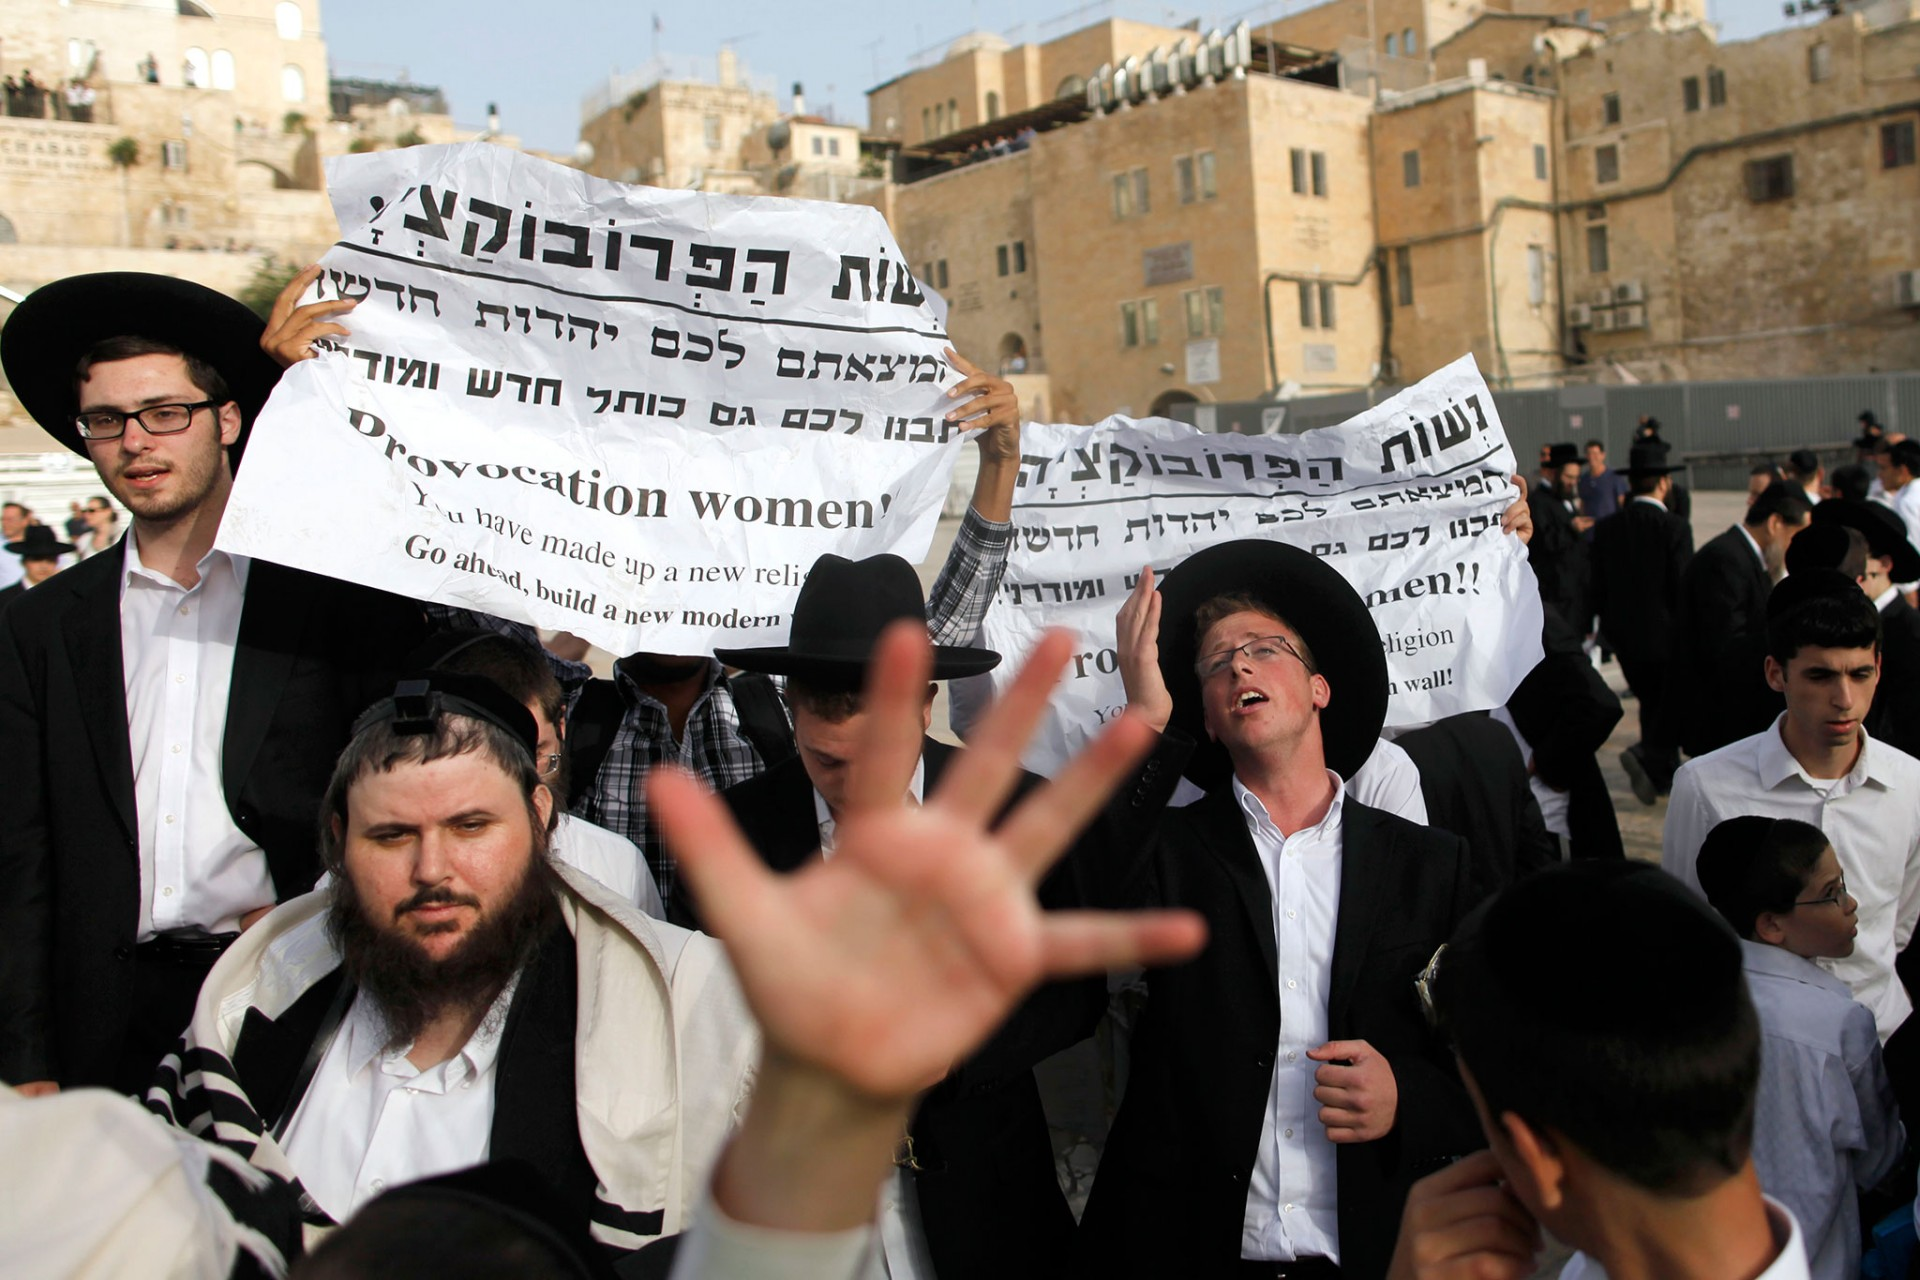 Demonstration against the religious group Women of the Wall, Jerusalem 2013